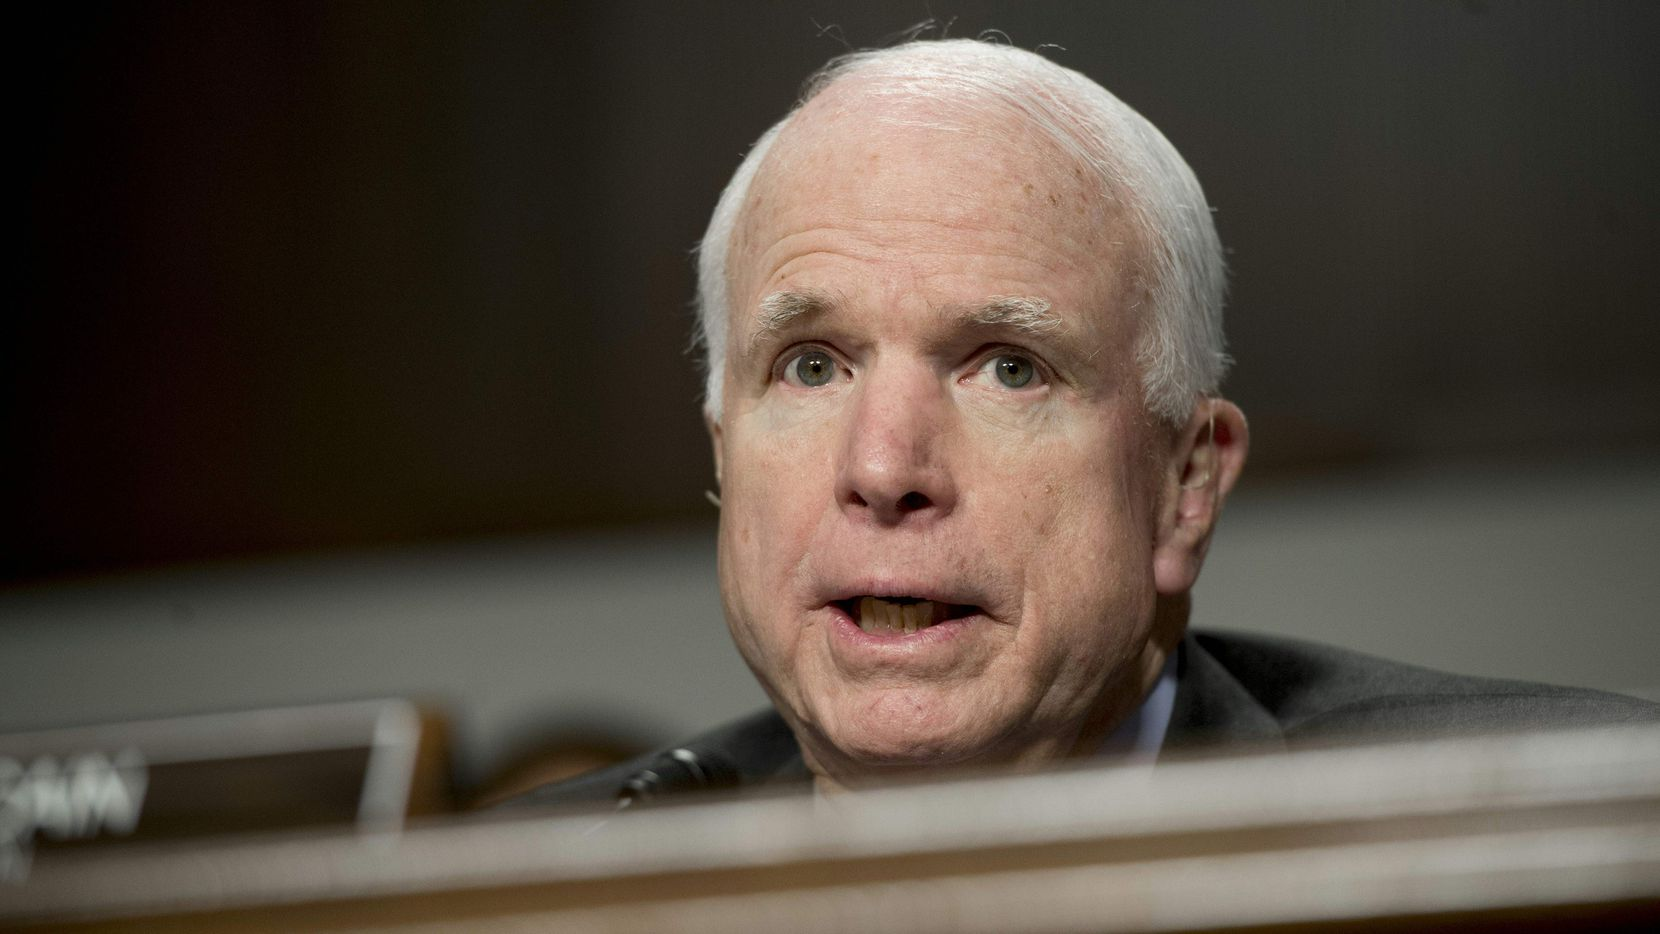 (FILES) This file photo taken on February 9, 2016 shows US Senator John McCain, Republican of Arizona and chairman of the Senate Armed Services Committee, speaking during a hearing on Capitol Hill in Washington, DC. US Senator John McCain has been diagnosed with brain cancer, his office said July 19, 2017.  / AFP PHOTO / Saul LOEBSAUL LOEB/AFP/Getty Images